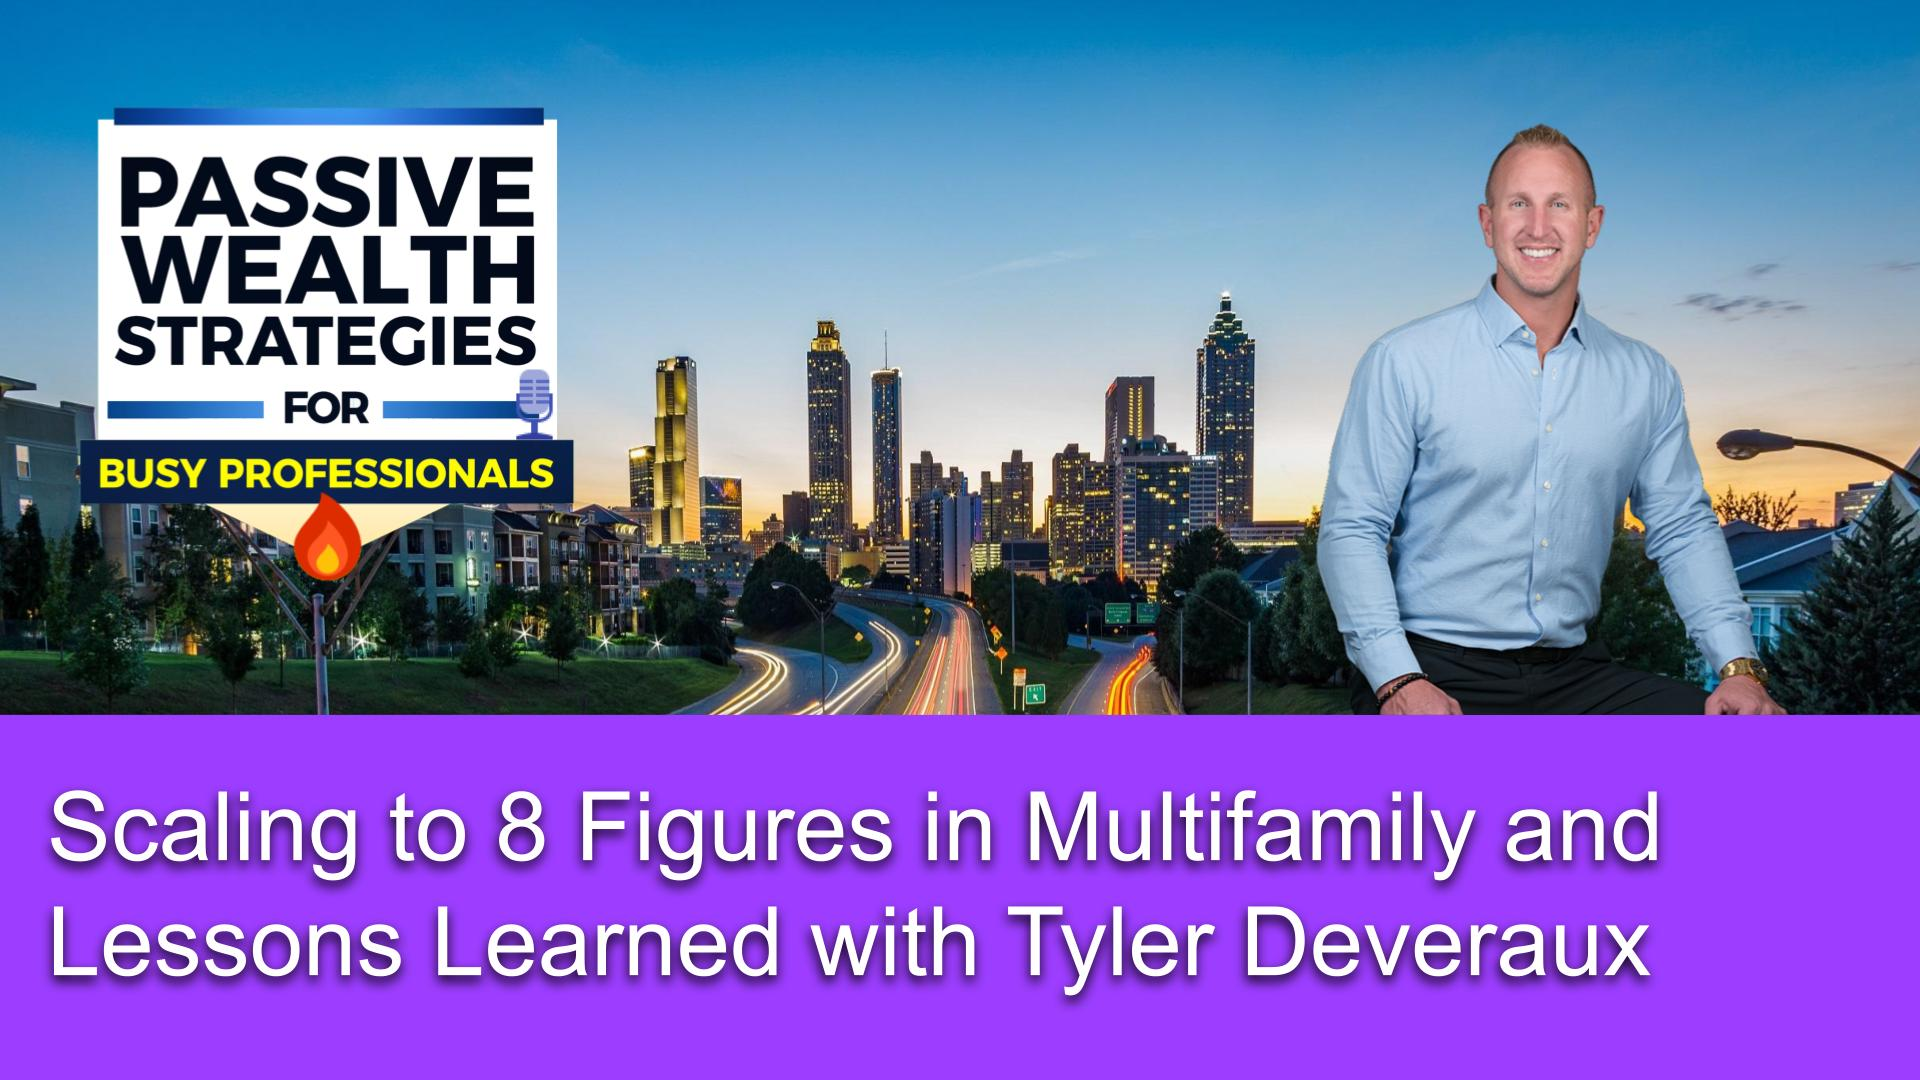 191 Scaling to 8 Figures in Multifamily and Lessons Learned with Tyler Deveraux